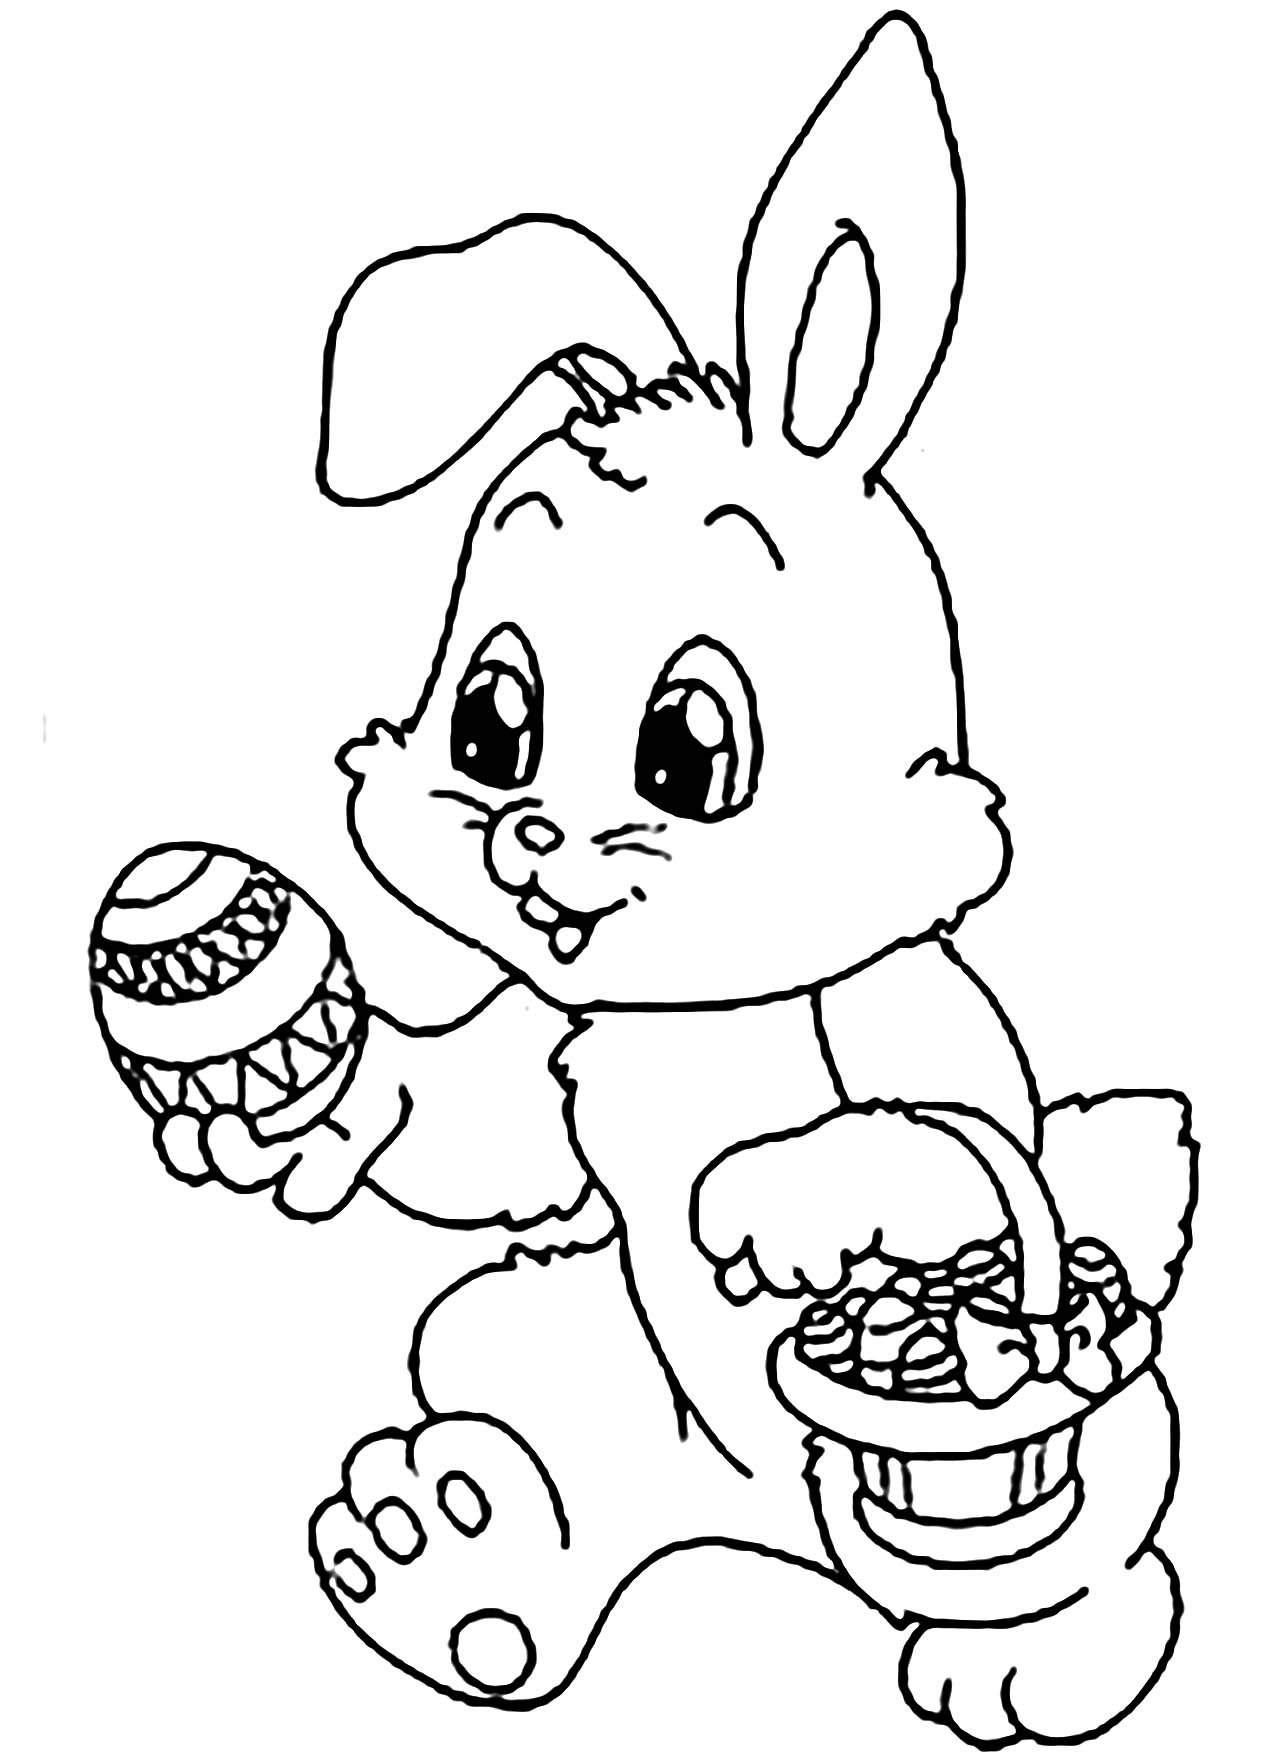 Rabbit coloring page to print and color for free